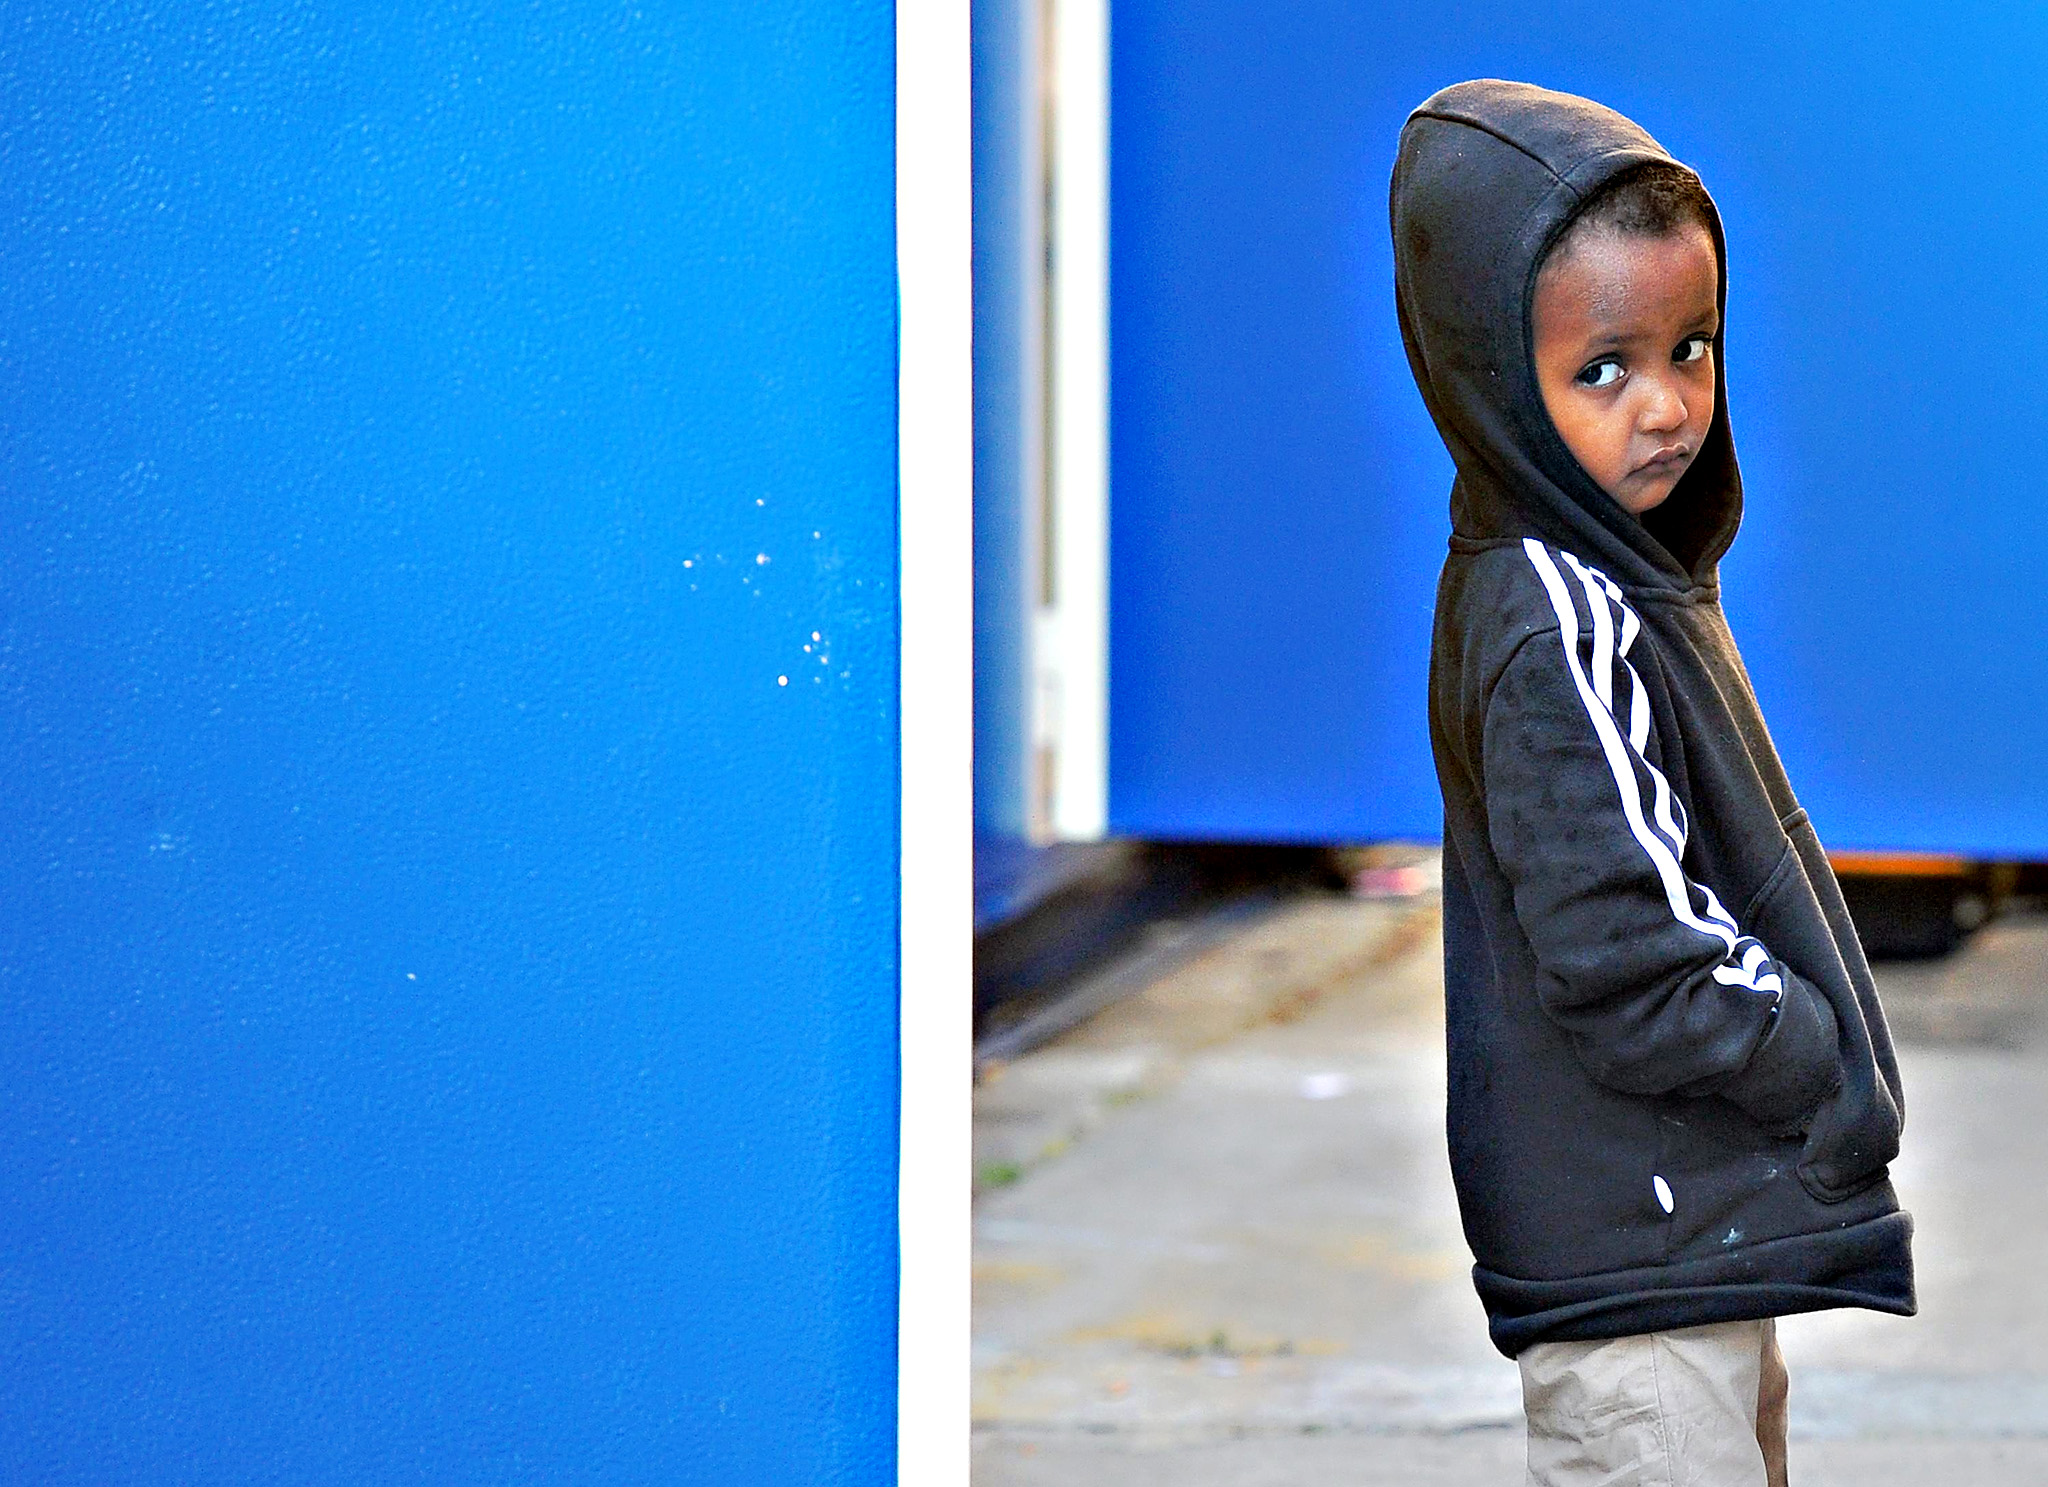 A migrant child walks a the train station of Ventimiglia, where stranded migrants are taking shelter, on the Italian border with France, Ventimiglia, Italy, 18 June 2015. The migrants, who wished to cross the border have been blocked by the French and Italian police. The European Commission has proposed the mandatory relocation of 40,000 Syrian and Eritrean asylum seekers from Italy and Greece to other EU nations over two years, to help take pressure off those two countries